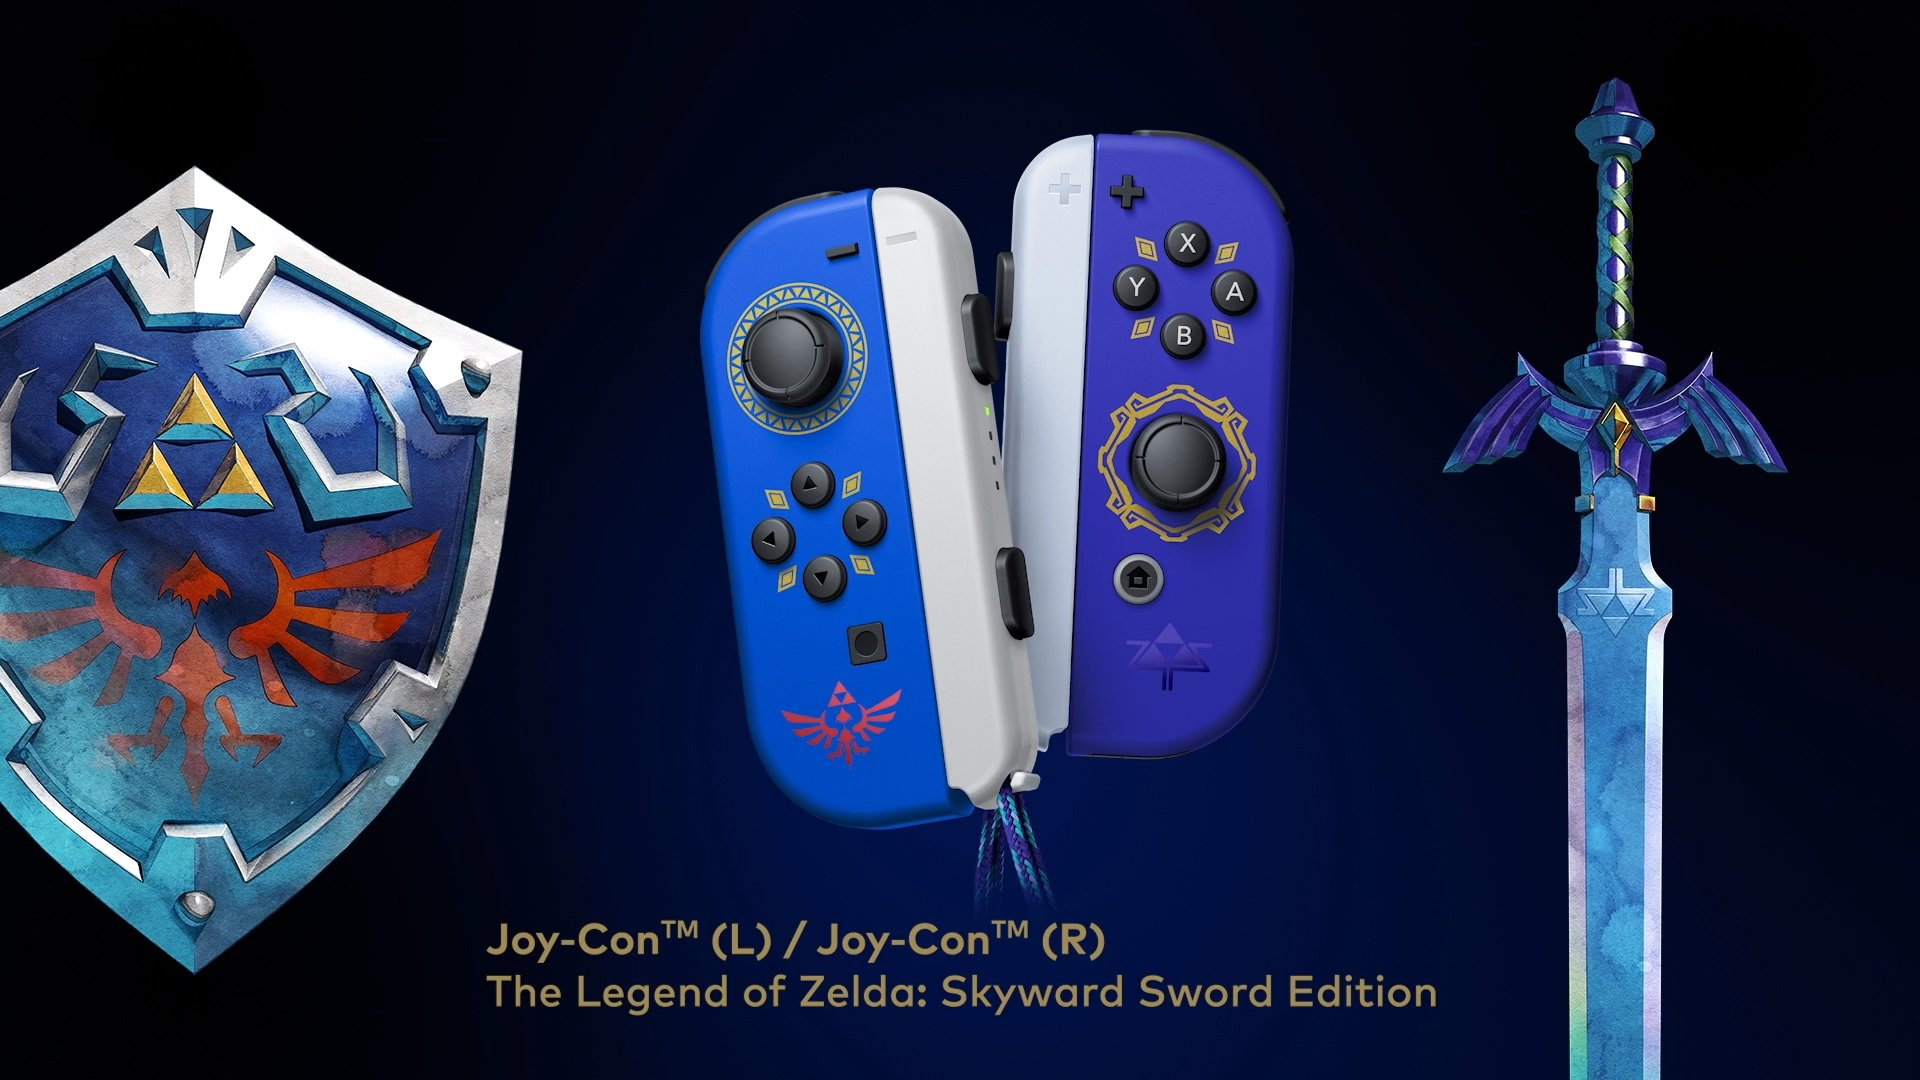 As announced at today's Nintendo Direct, The Legend of Zelda: Skyward Sword is headed to Switch, with a pair of matching Joycons.